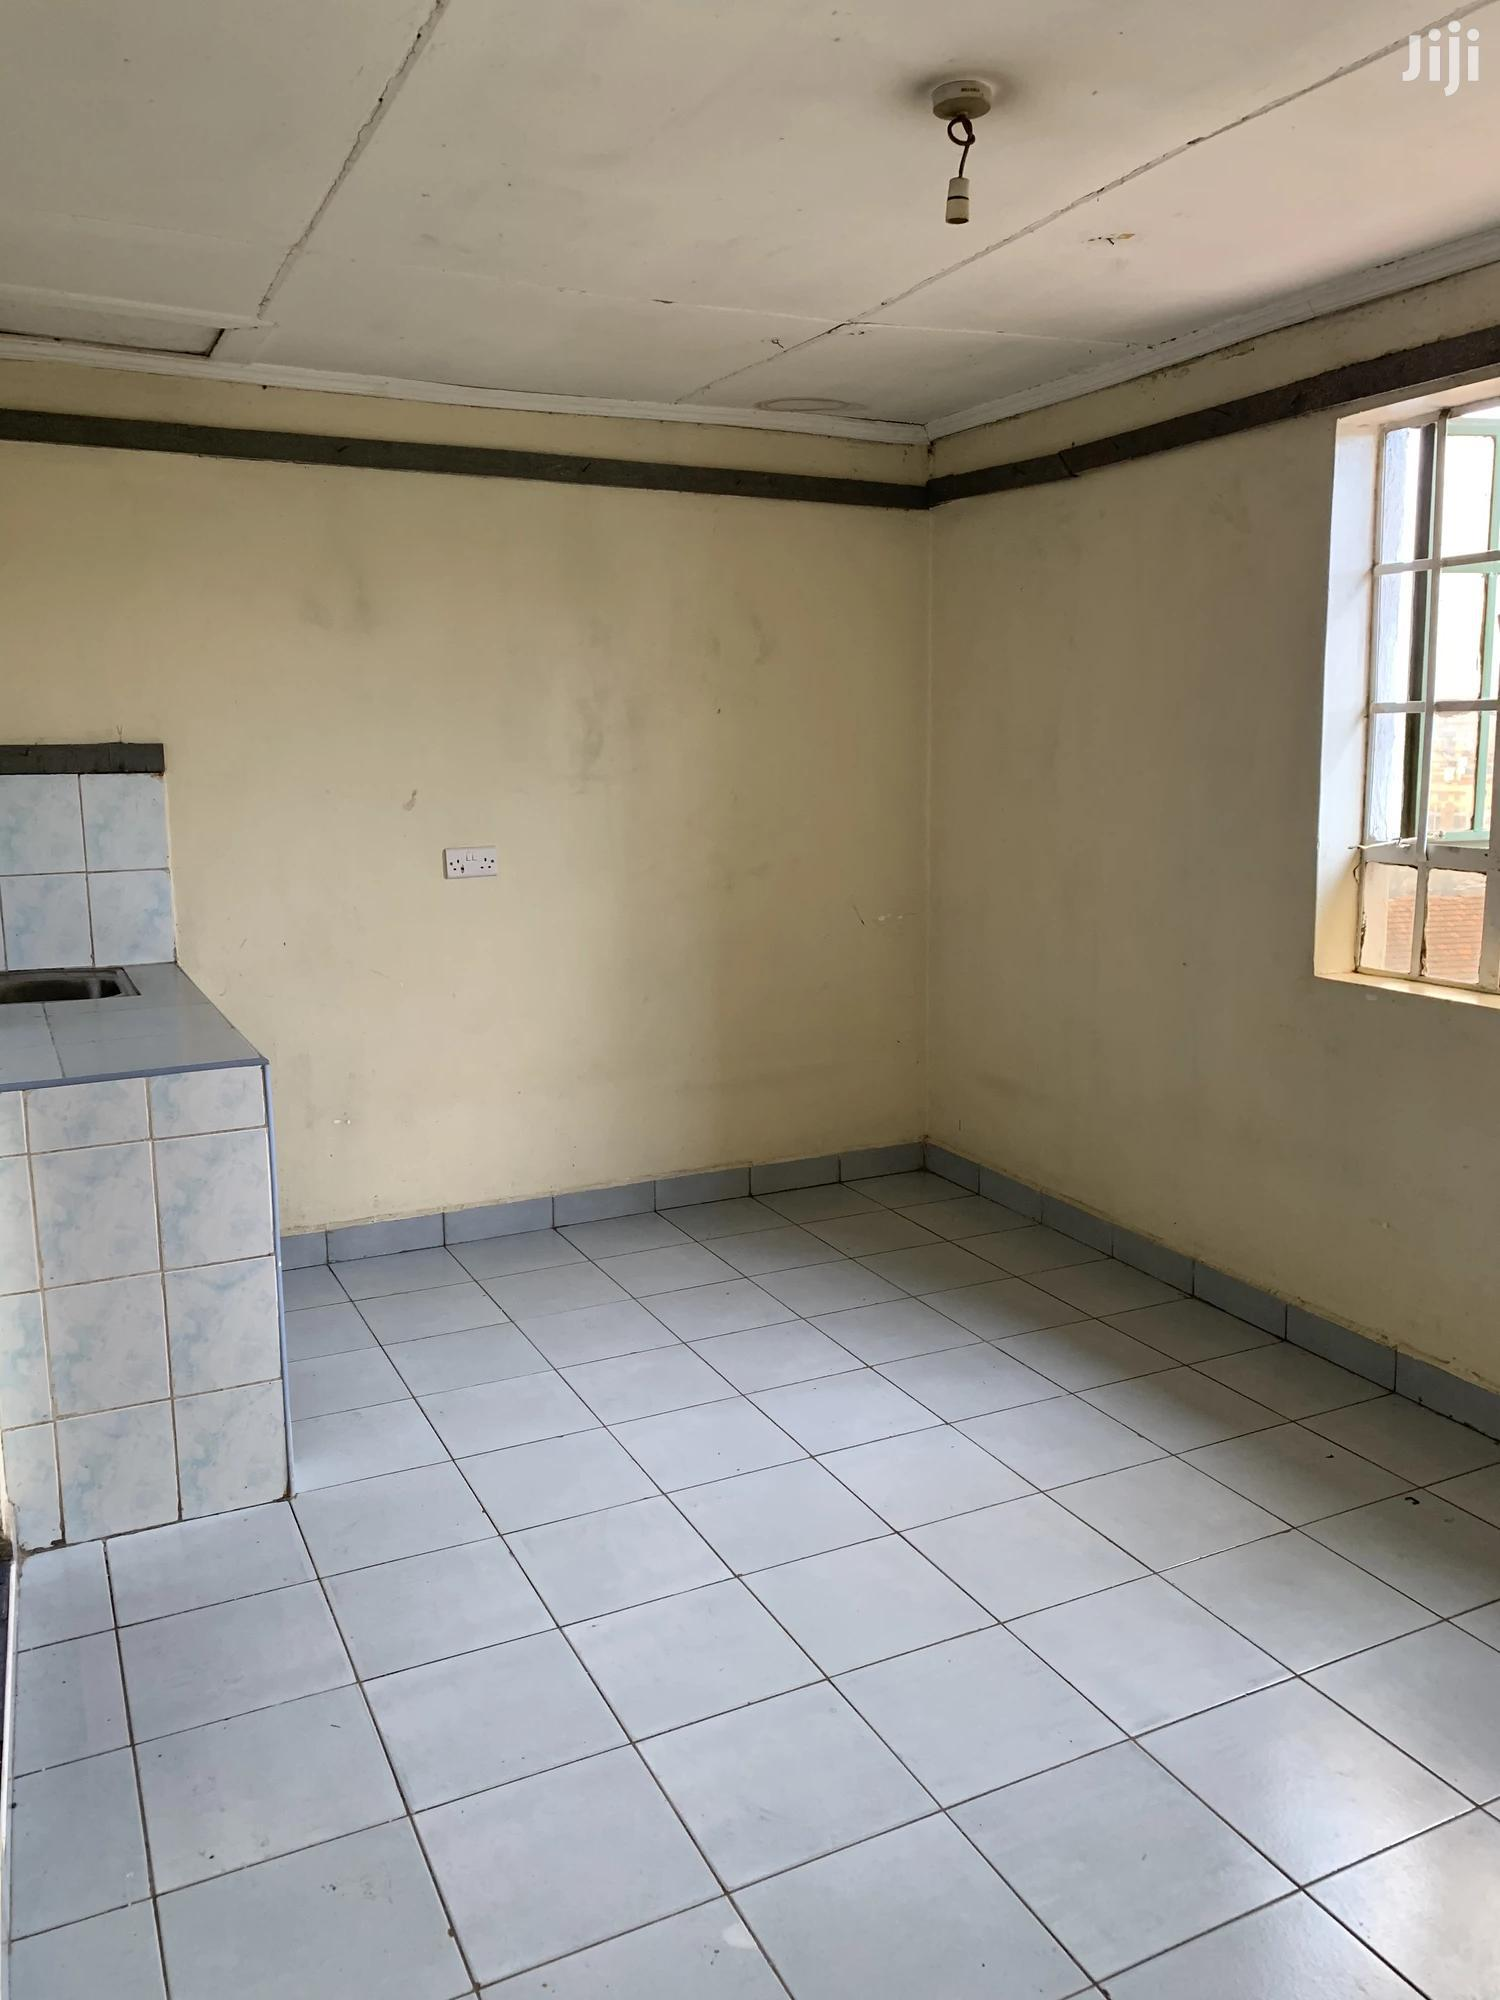 Bedsitter Apartments In Ngara Next To Equity Bank For Rent | Houses & Apartments For Rent for sale in Ngara, Nairobi, Kenya